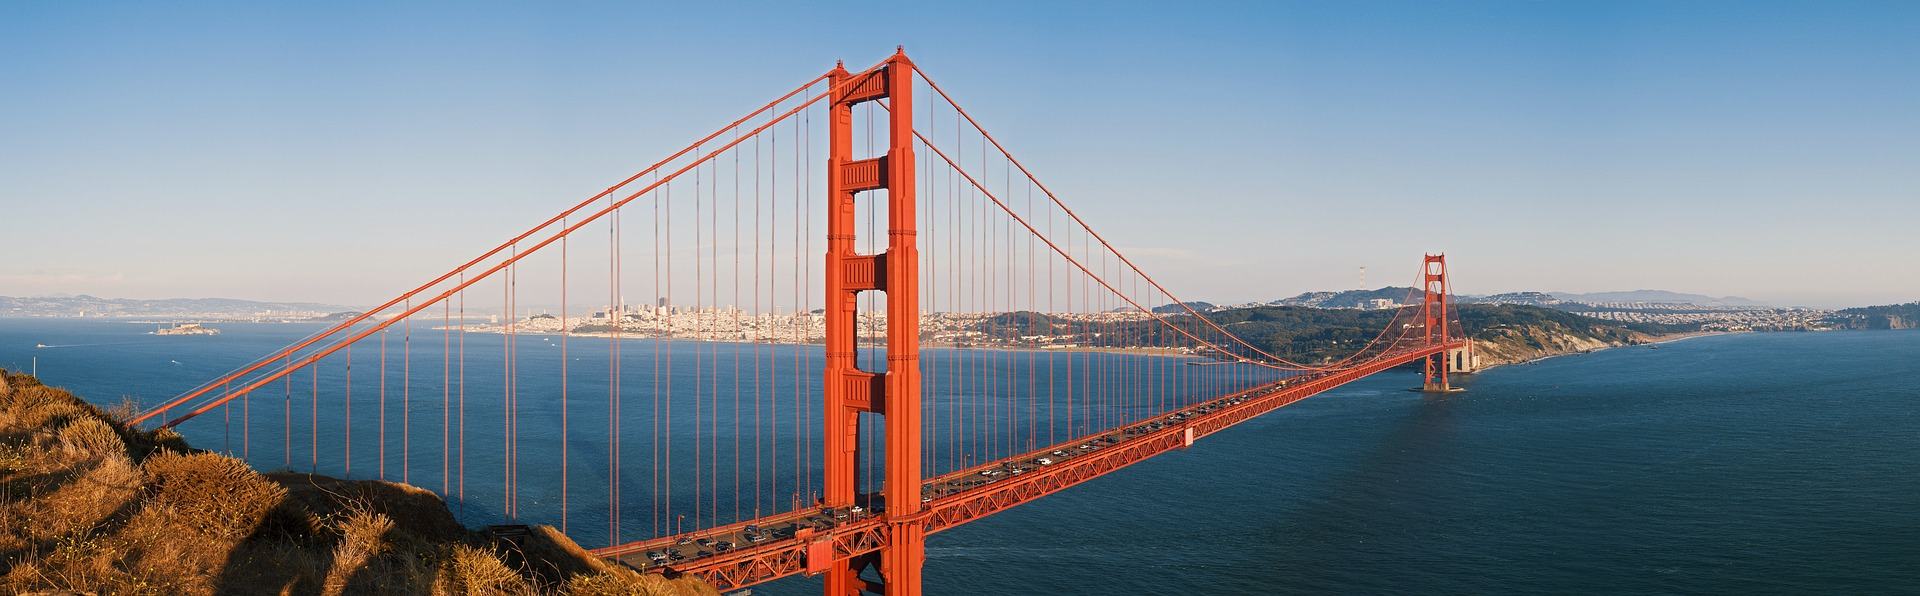 Engineering marvel - the Golden Gate Bridge